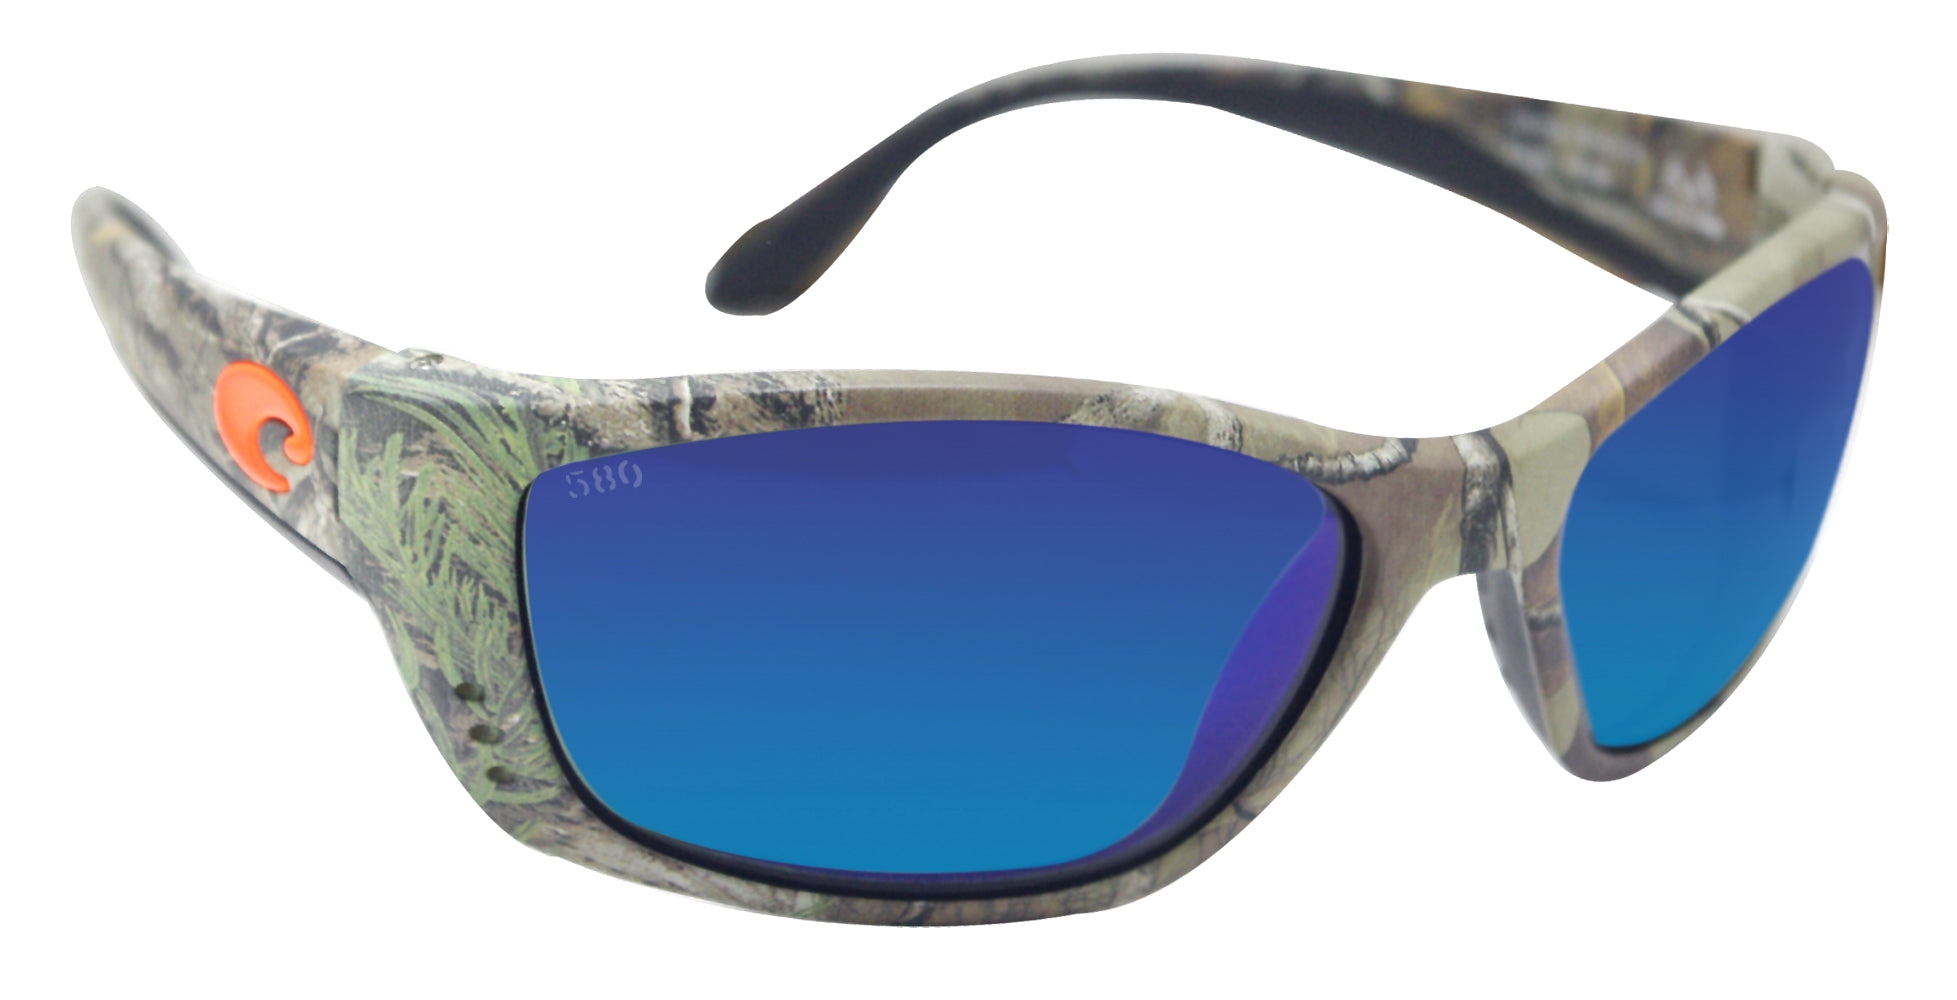 bdd5b5e5fb3 Costa Del Mar Fisch Realtree Camo Frame Blue Mirror 580G Glass Polarized  Lens ...